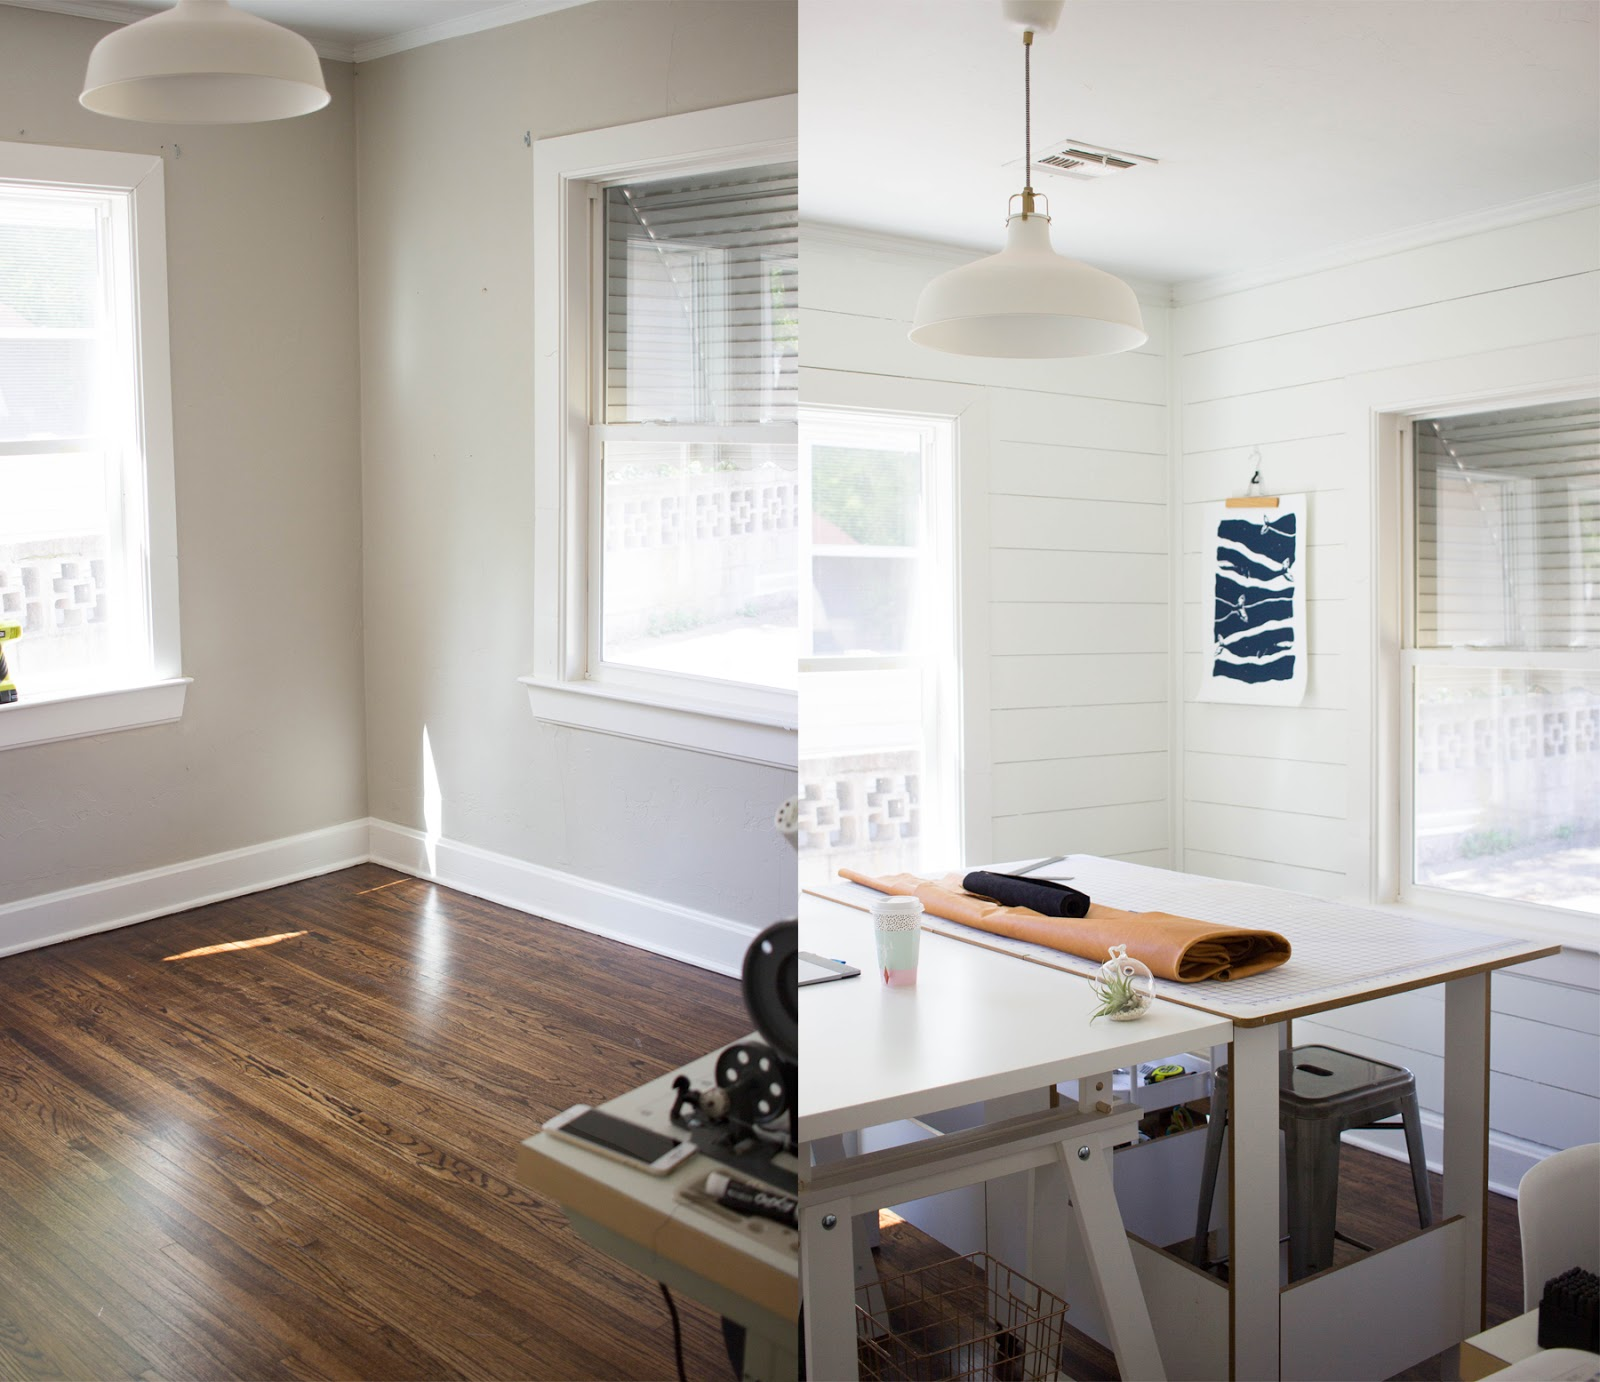 Always rooney how to shiplap a room for under 150 diy for Images of rooms with shiplap